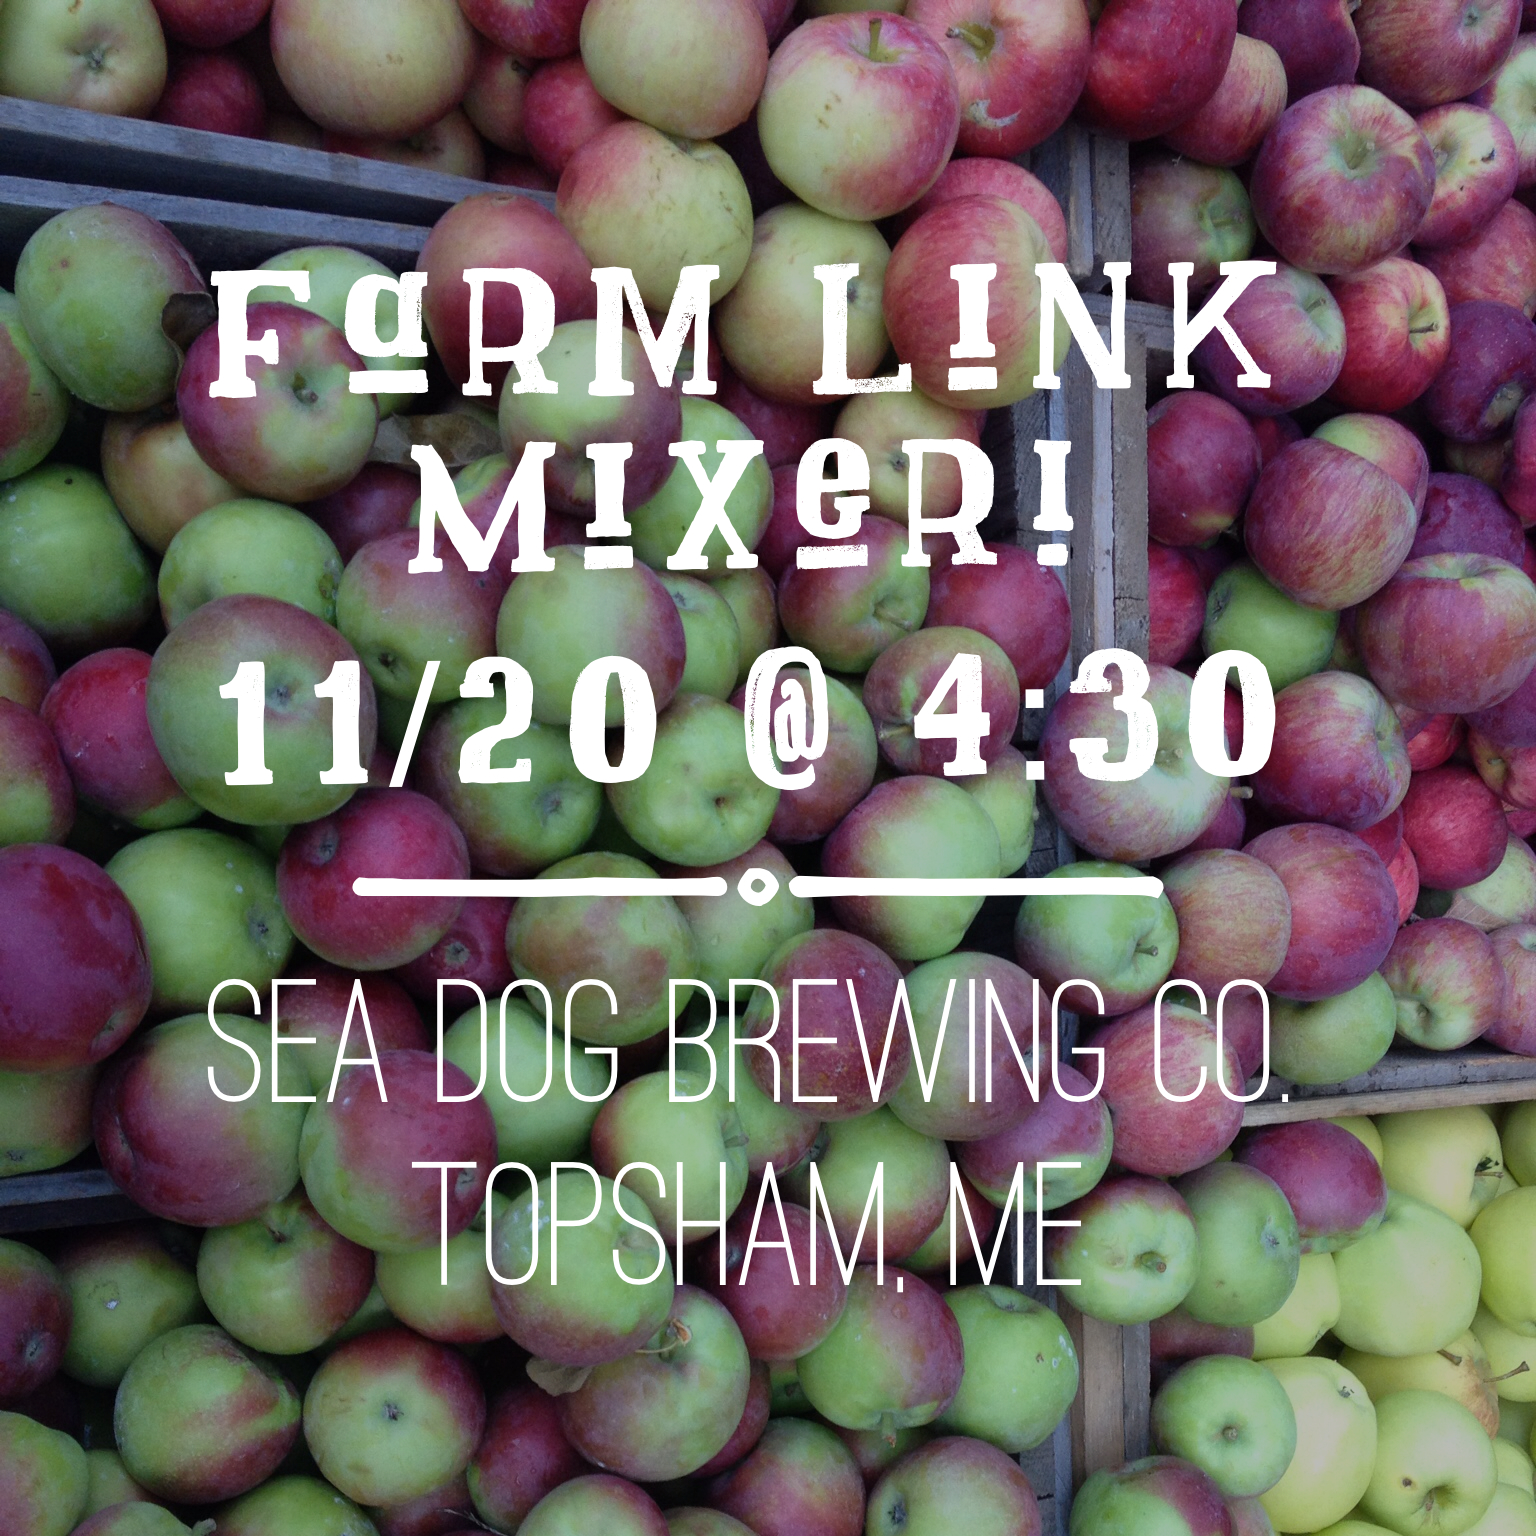 Farm Link Mixer In Topsham!